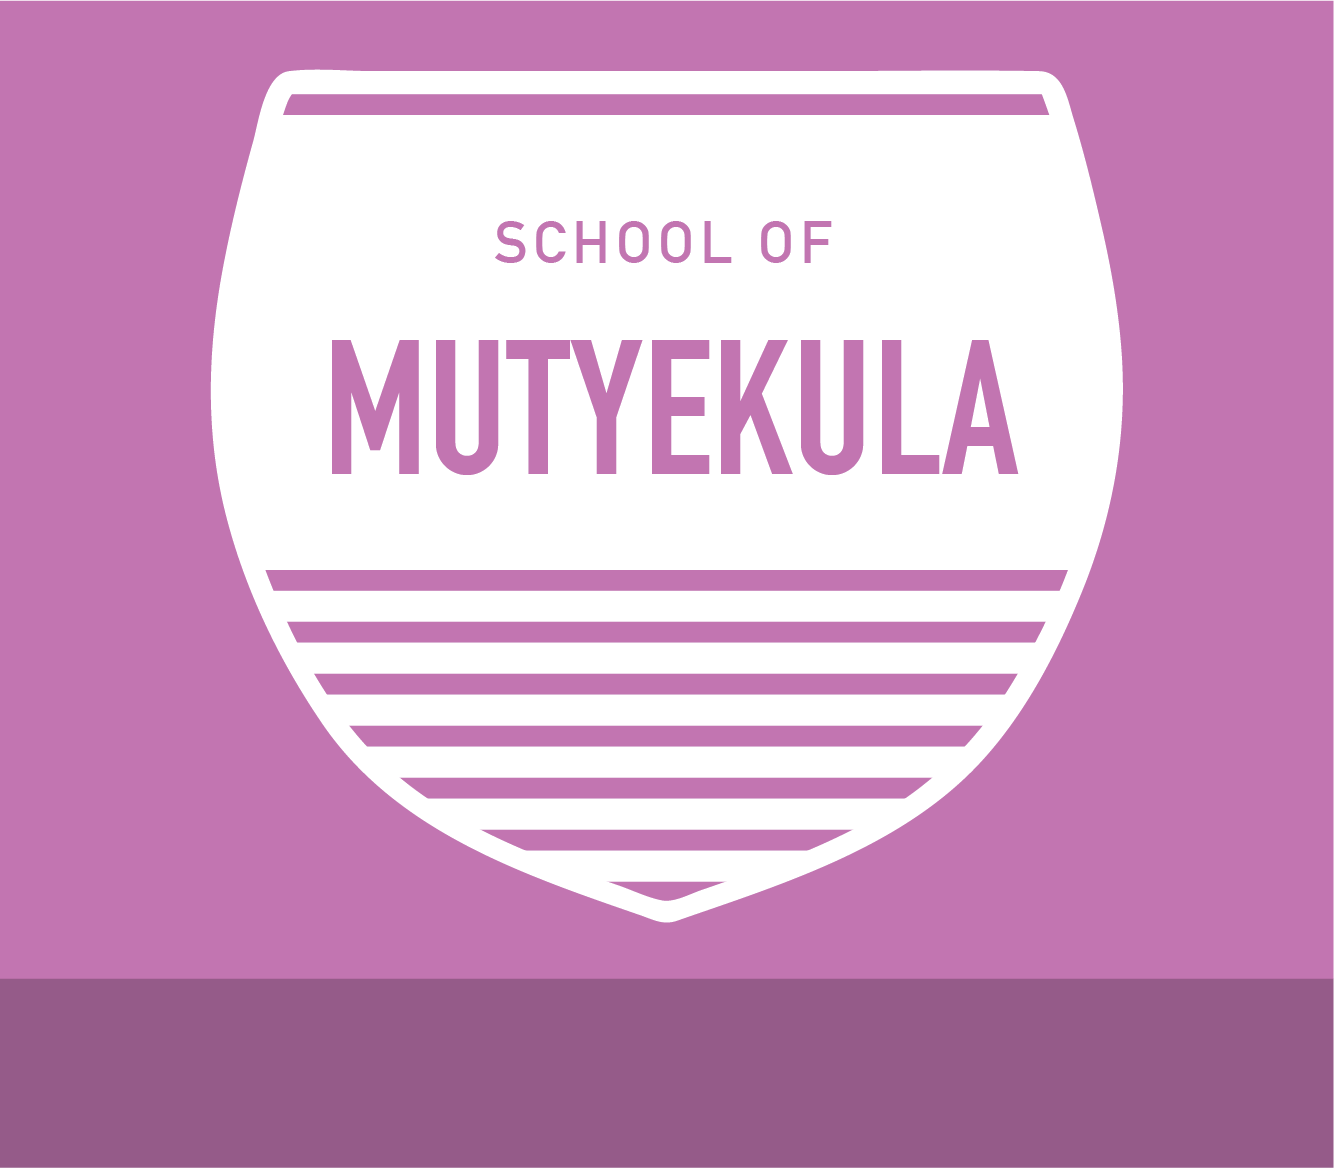 School of mutyekula